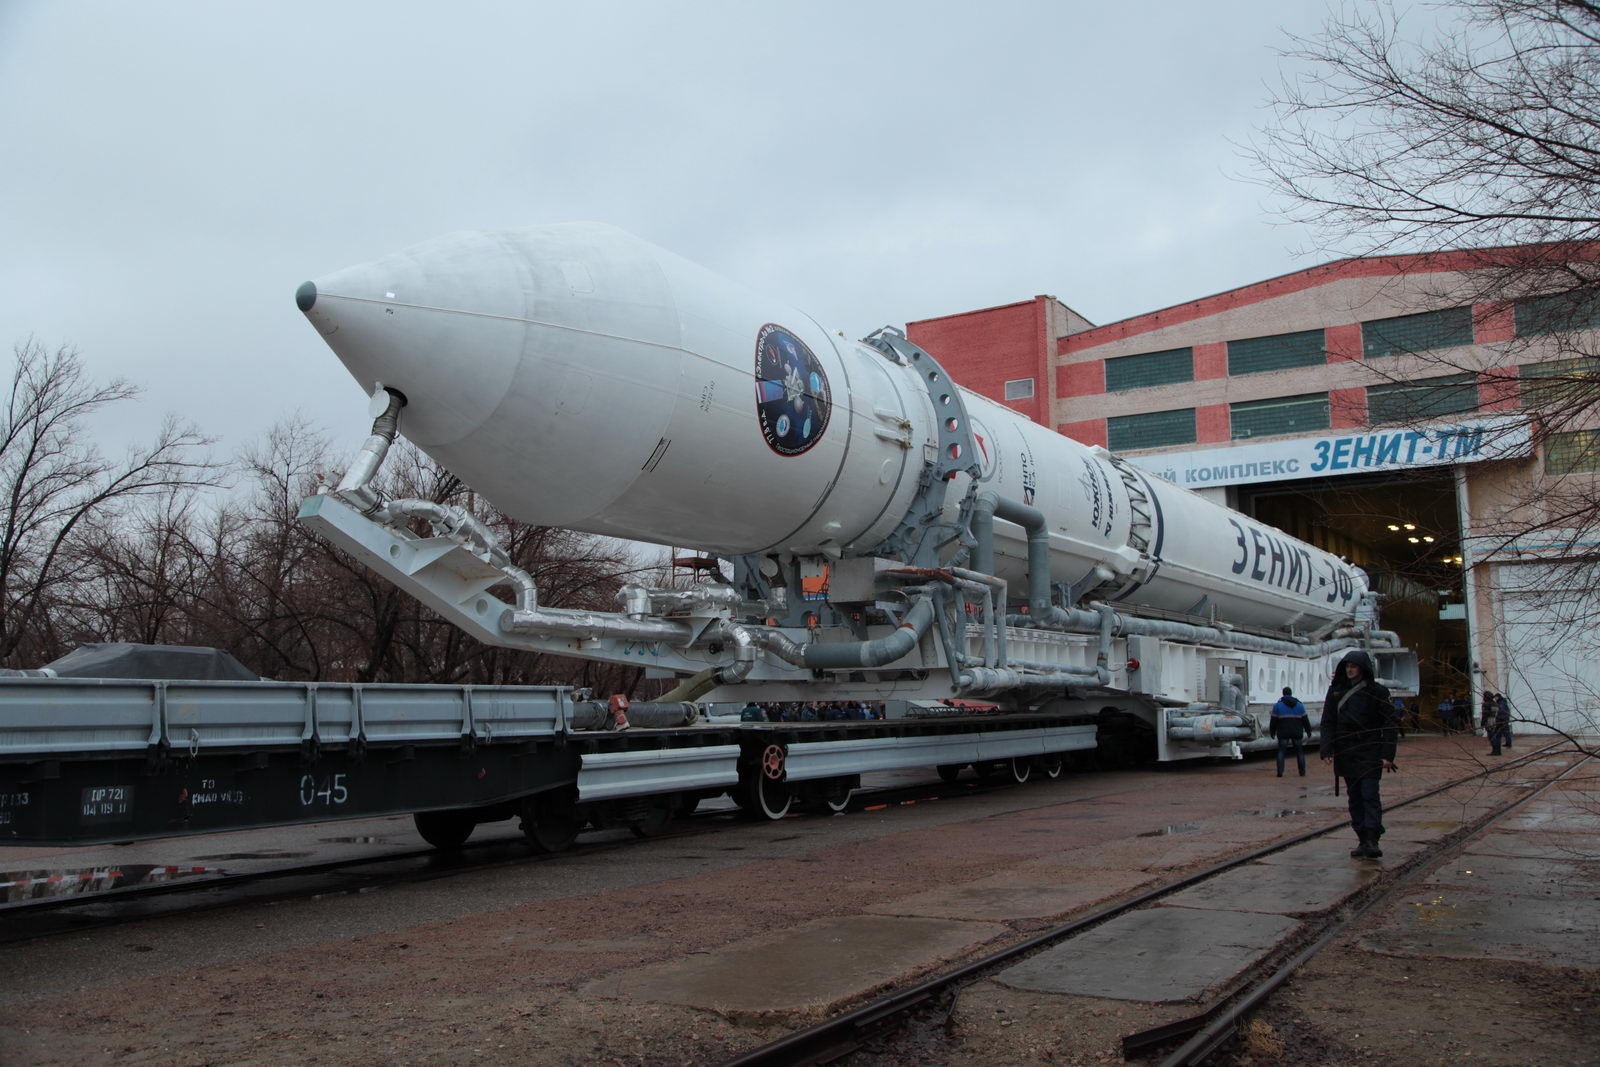 The Zenit rocket emerges from an assembly building at the Baikonur Cosmodrome on Wednesday for rollout to the launch pad. Credit: Roscosmos